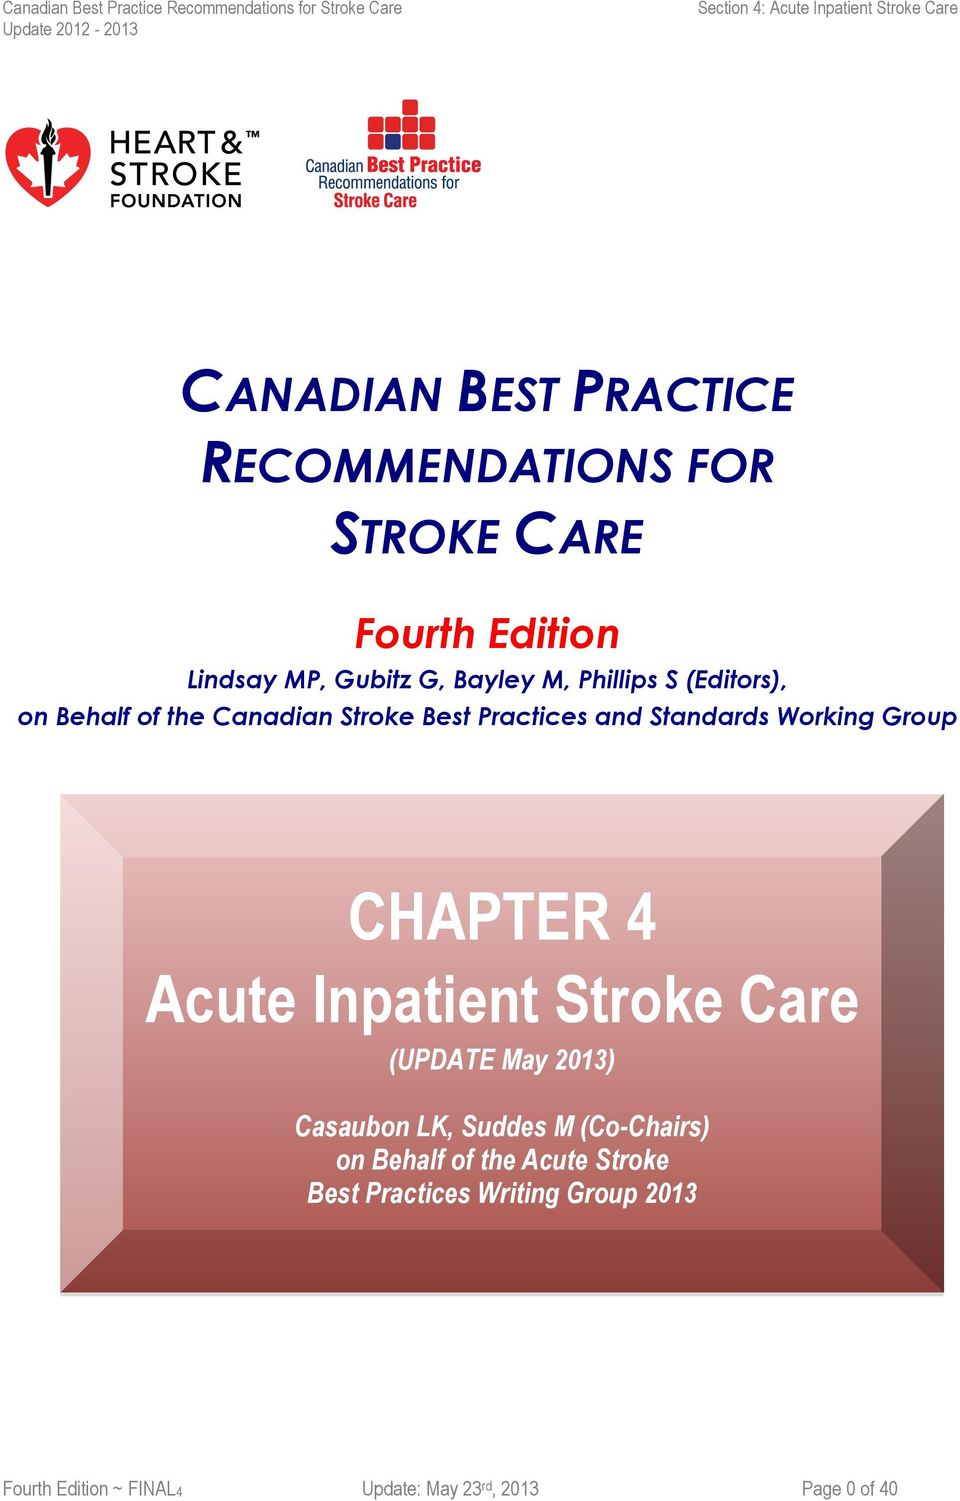 CHAPTER 4 Acute Inpatient Strke Care (UPDATE May 2013) Casaubn LK, Suddes M (C-Chairs) n Behalf f